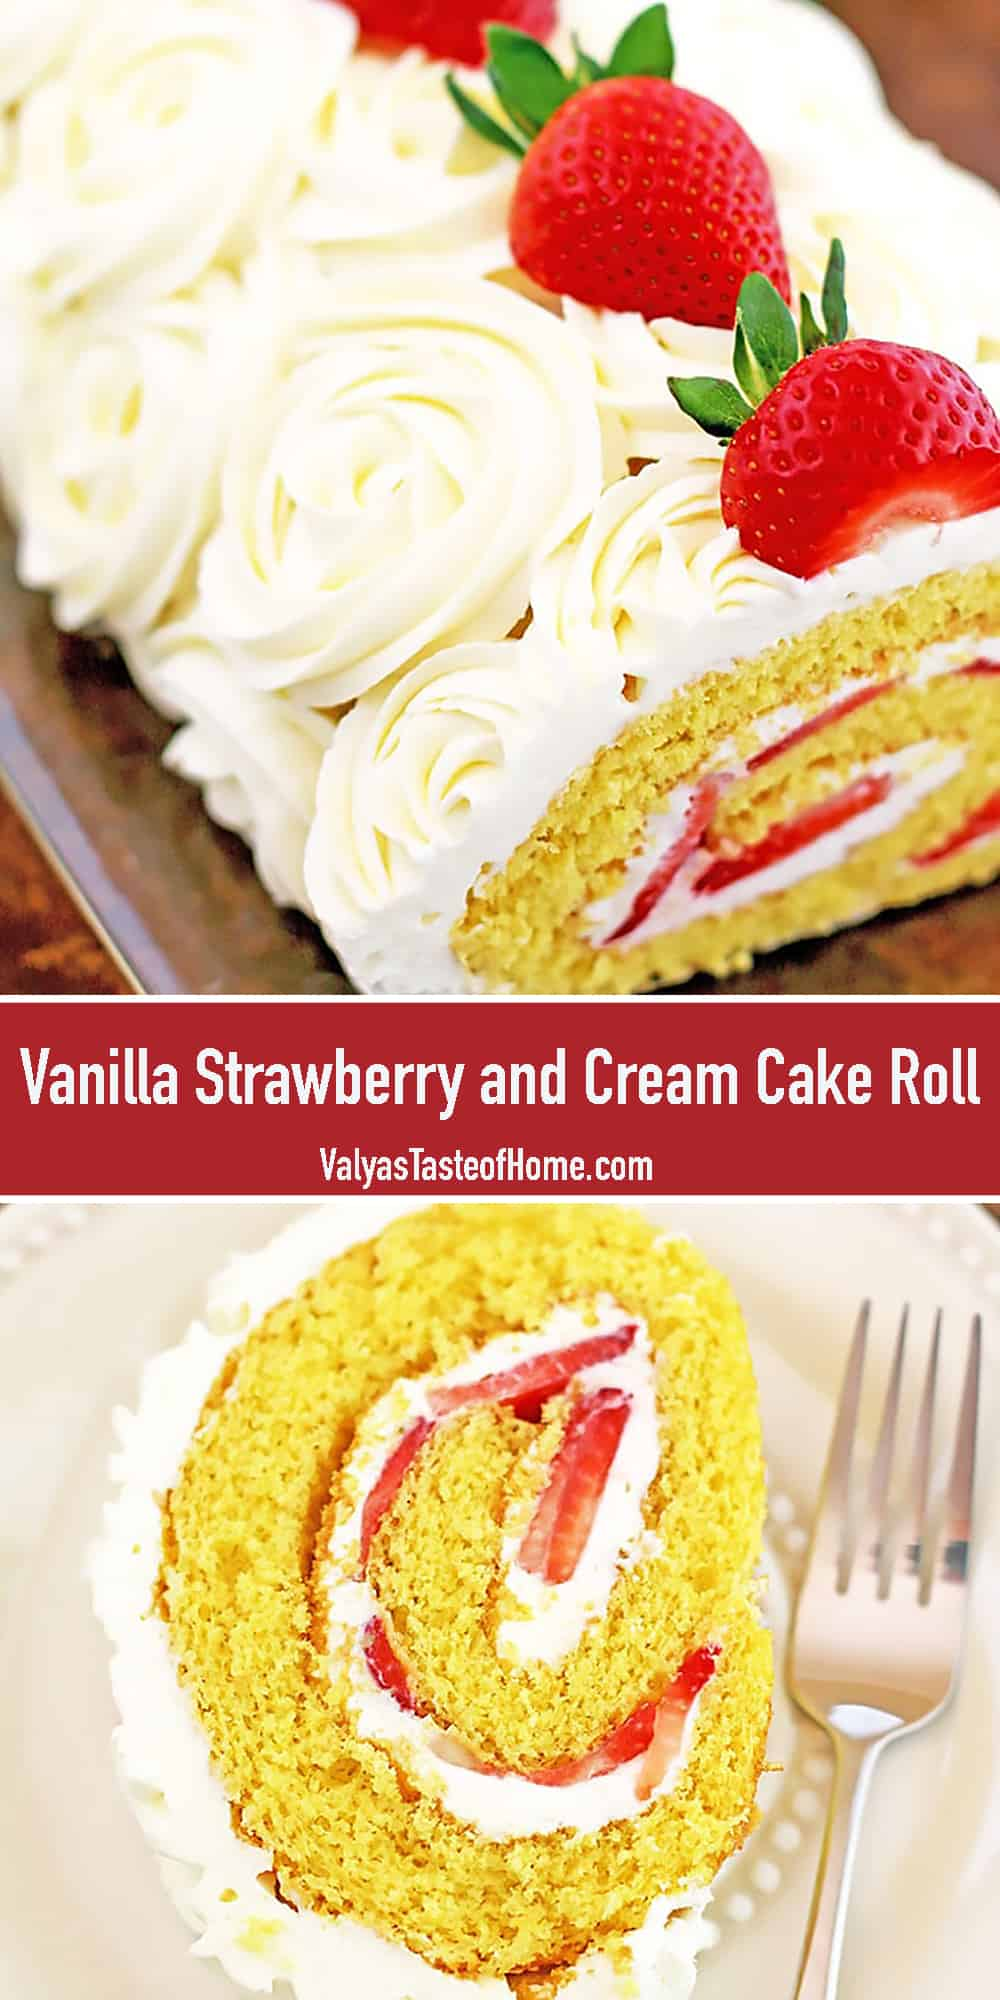 This amazing Vanilla Strawberry and Cream Cake Roll is soeasy to make but tastes incredible! Very close to strawberry shortcake andlooks absolutely stunning. Would you like to make a treat for mom on Mother'sDay? This delicious cake roll would make a wonderful dessert for this comingMother's Day! Make this delightful treat for your own mother and make her facebloom and shine with joy! She will adore it!